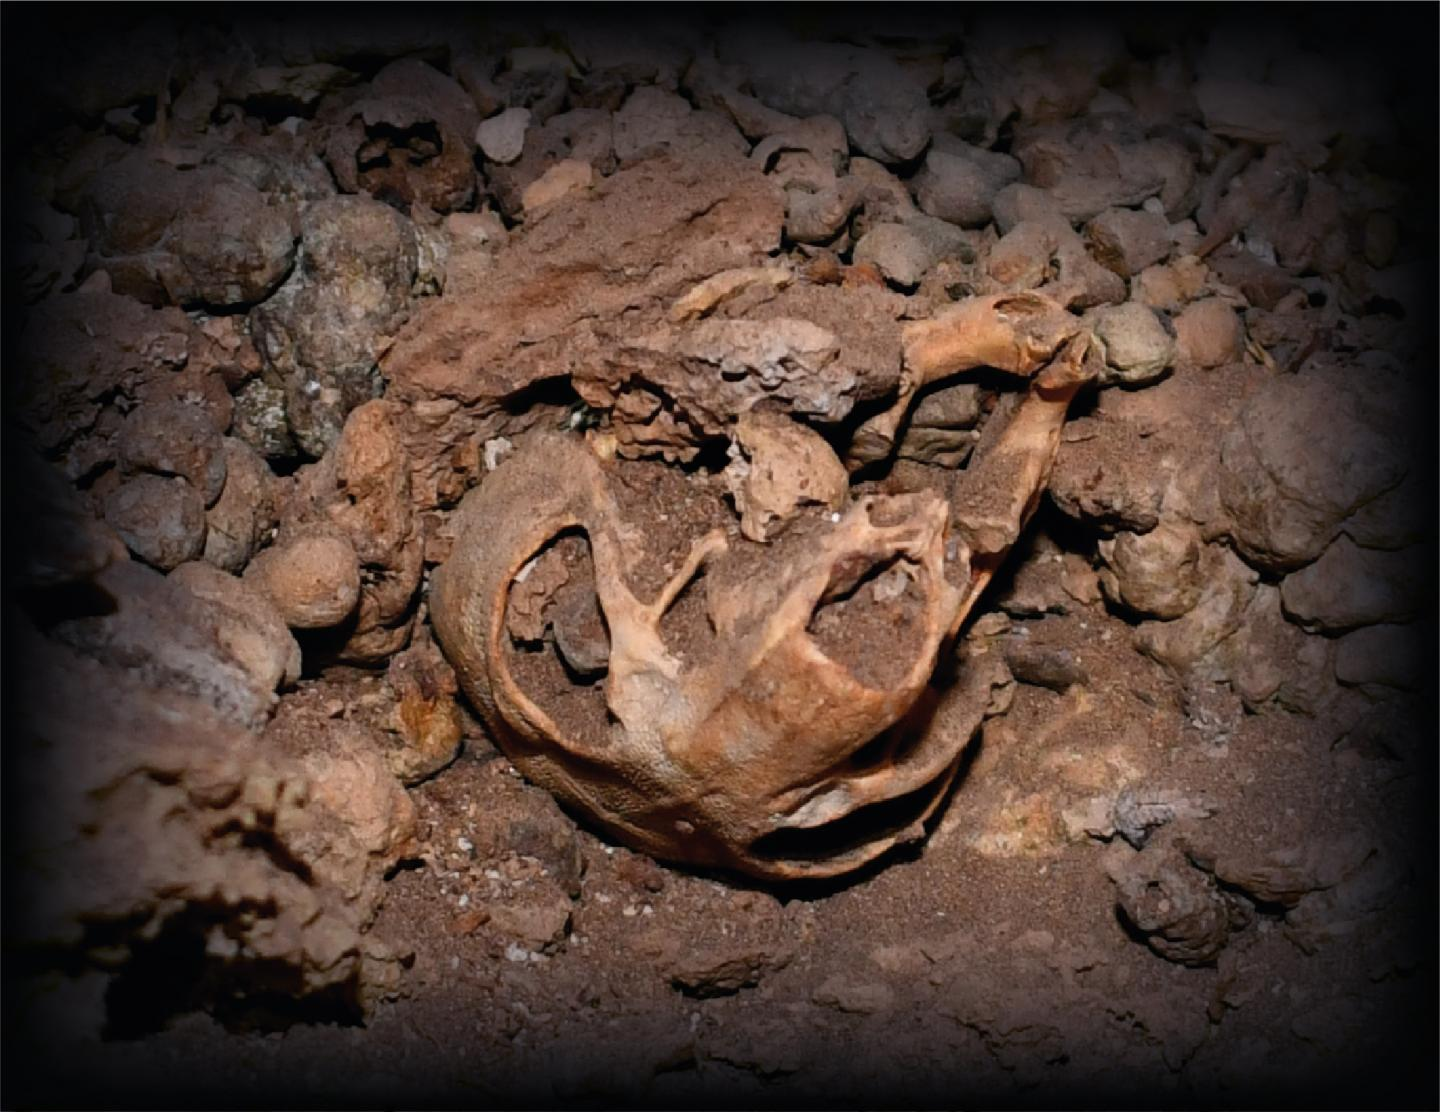 A skull of the Dead Sea crested rat subspecies